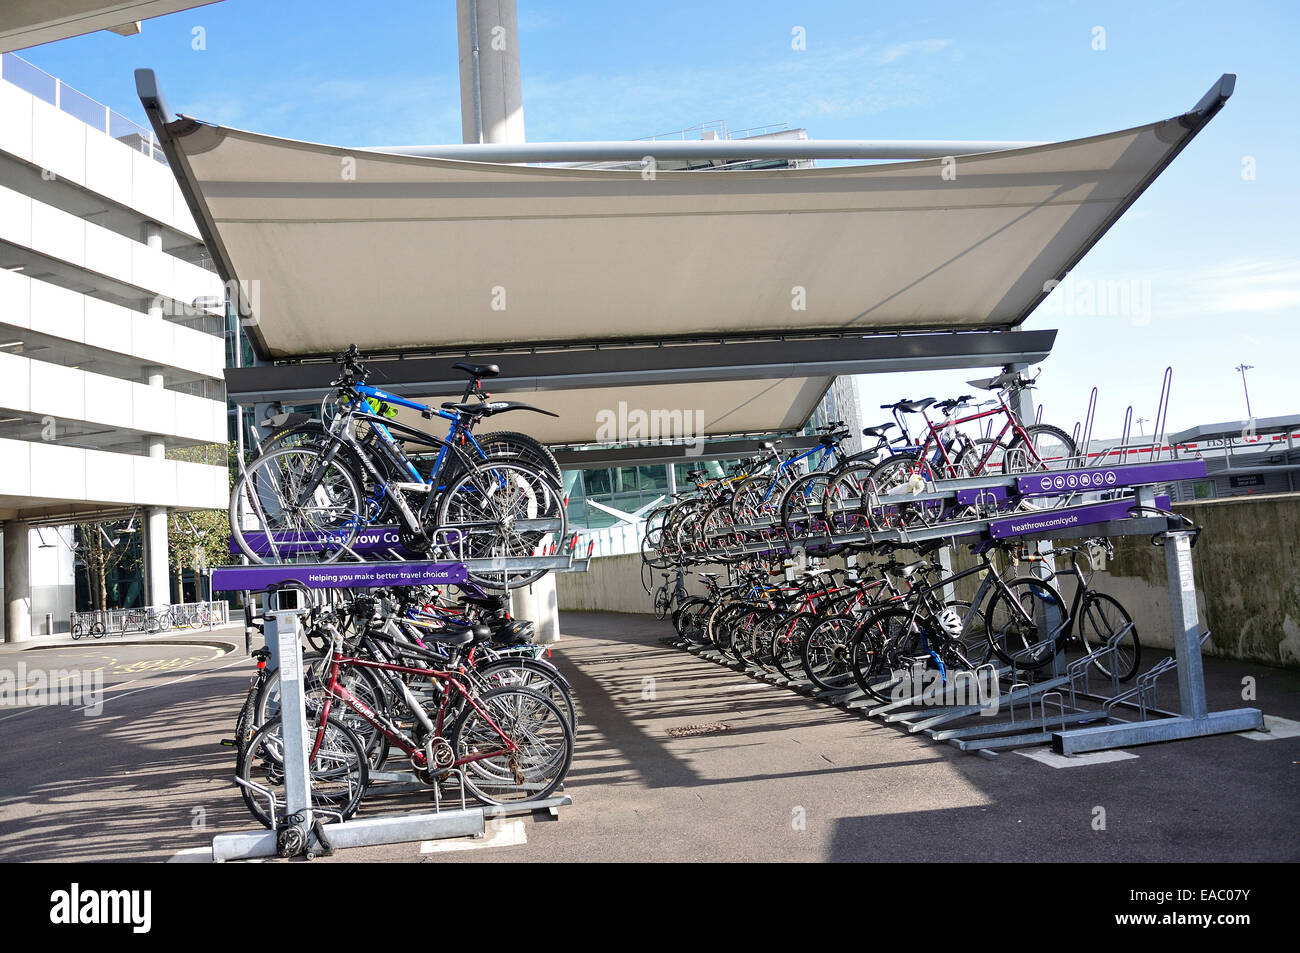 Cycle park at Terminal 5, Heathrow Airport. London Borough of Hounslow, Greater London, England, United Kingdom - Stock Image